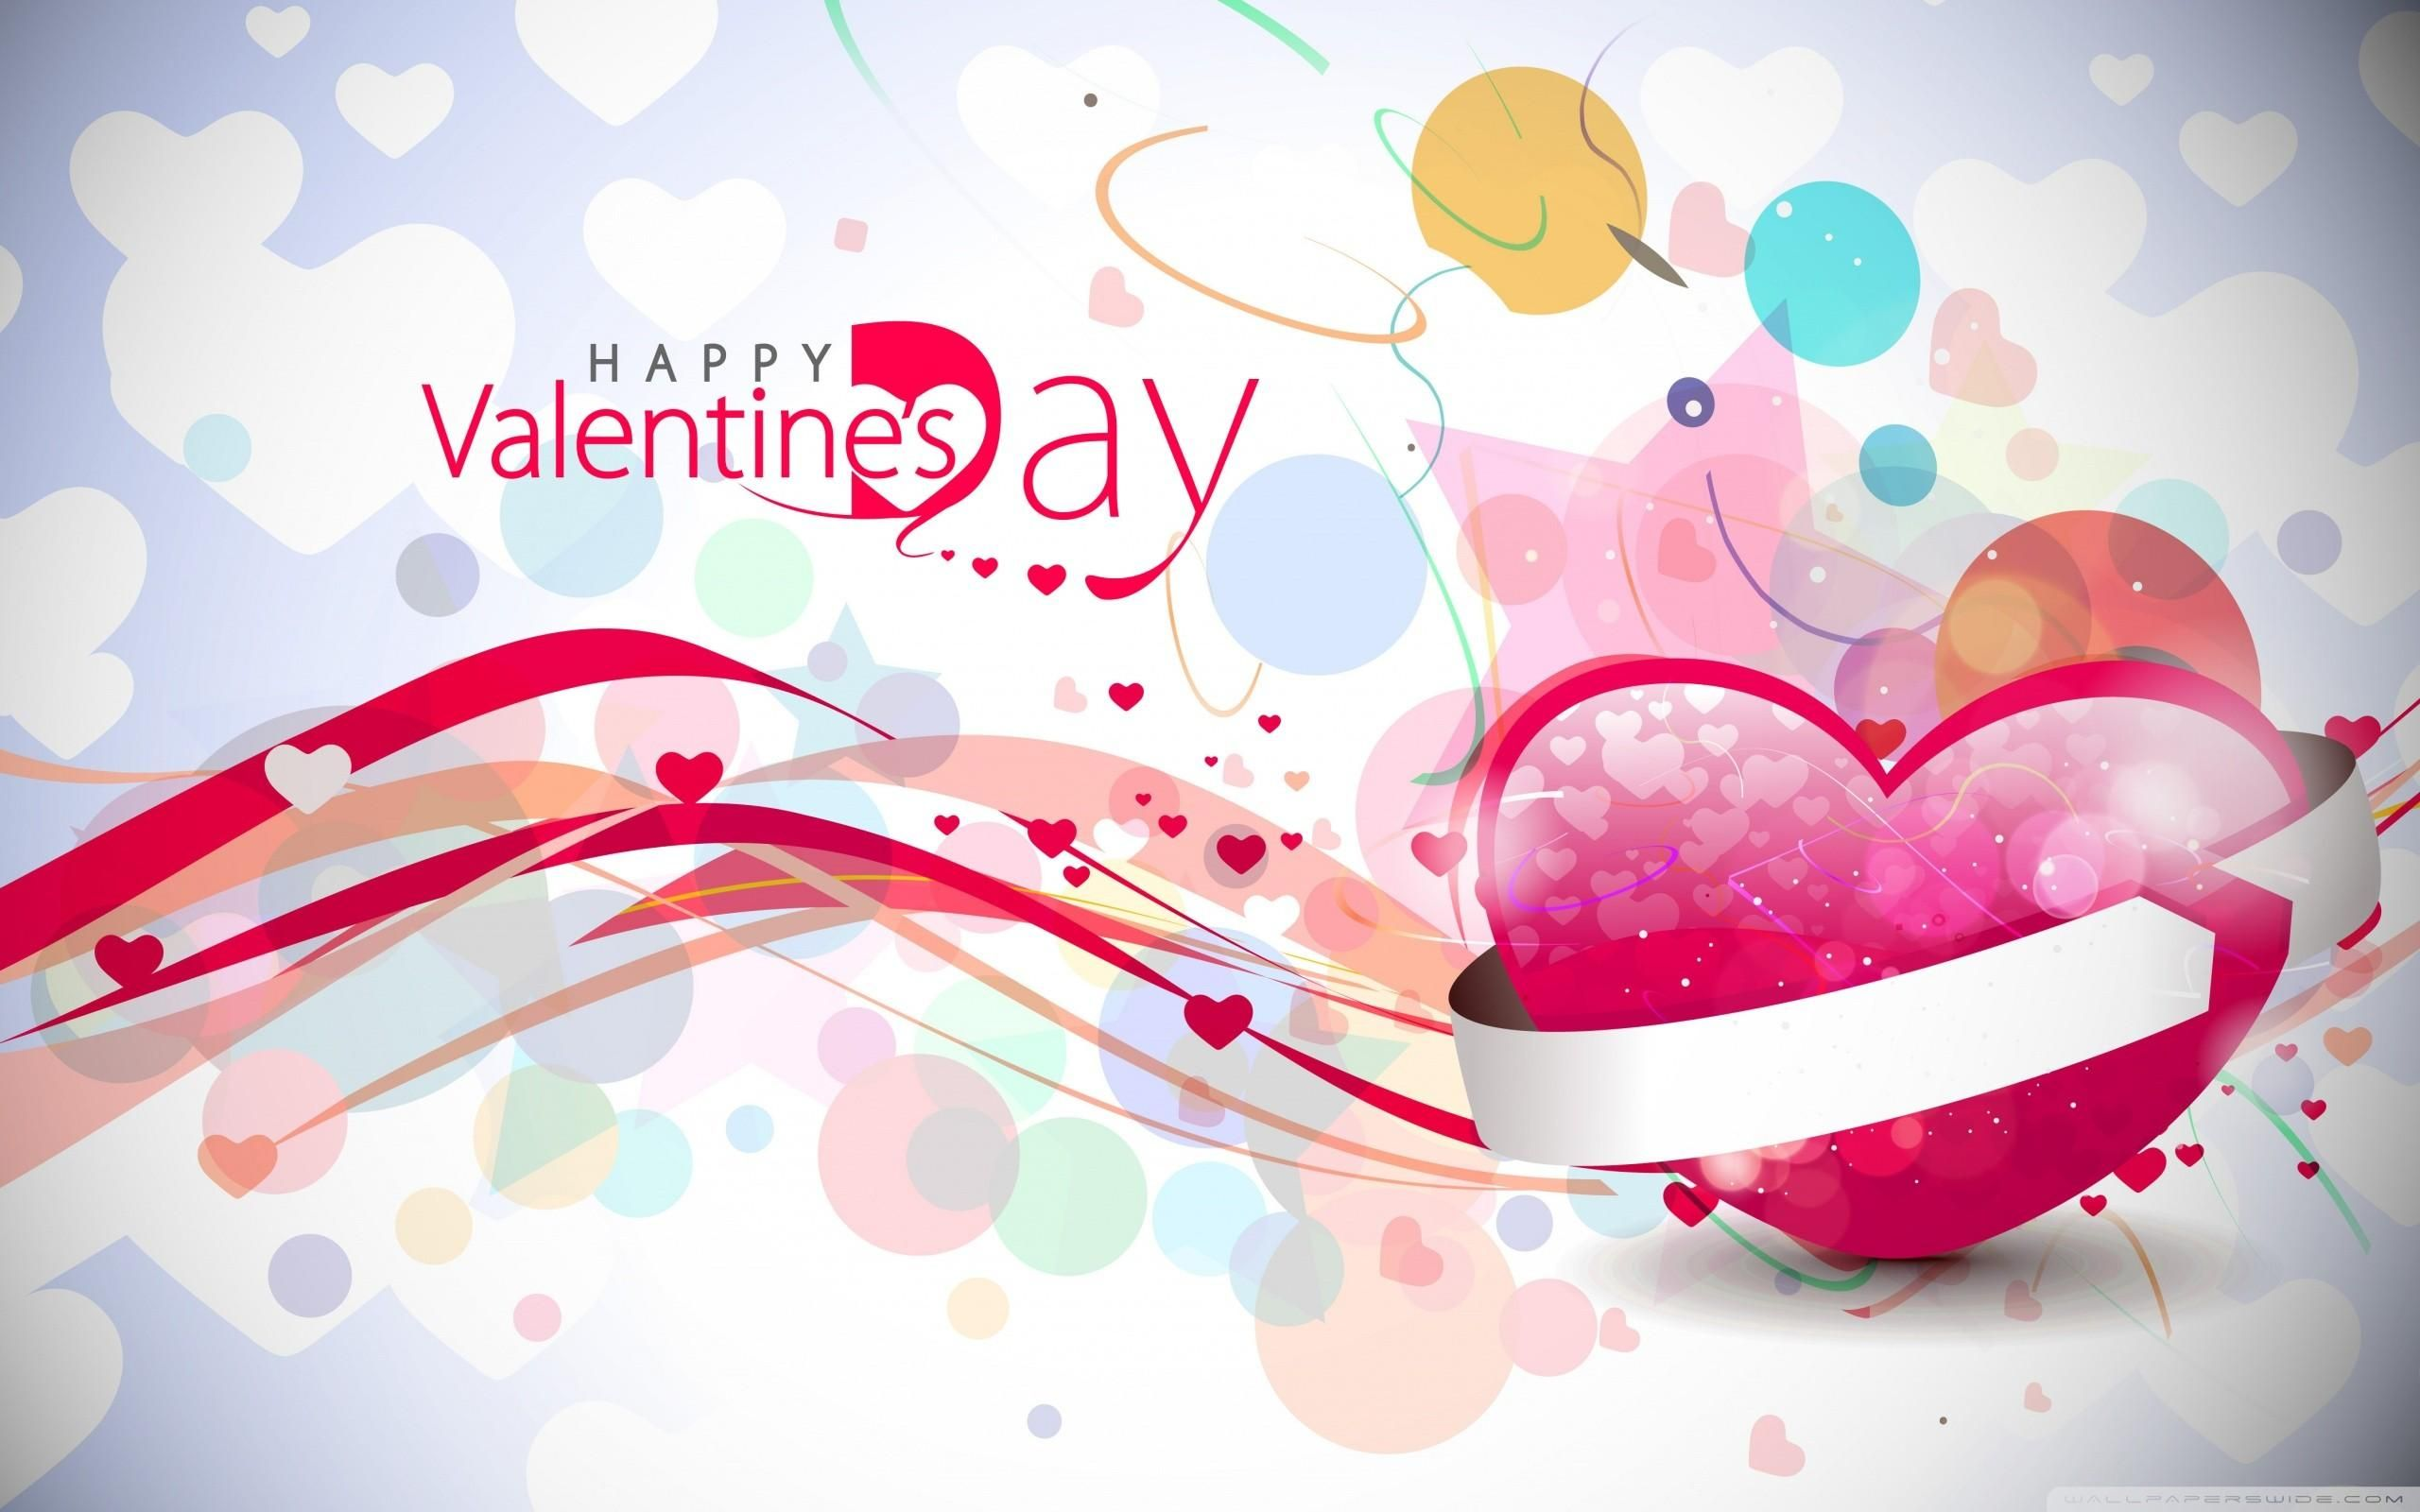 D Happy Valentines Day HD Images For Love GF BF